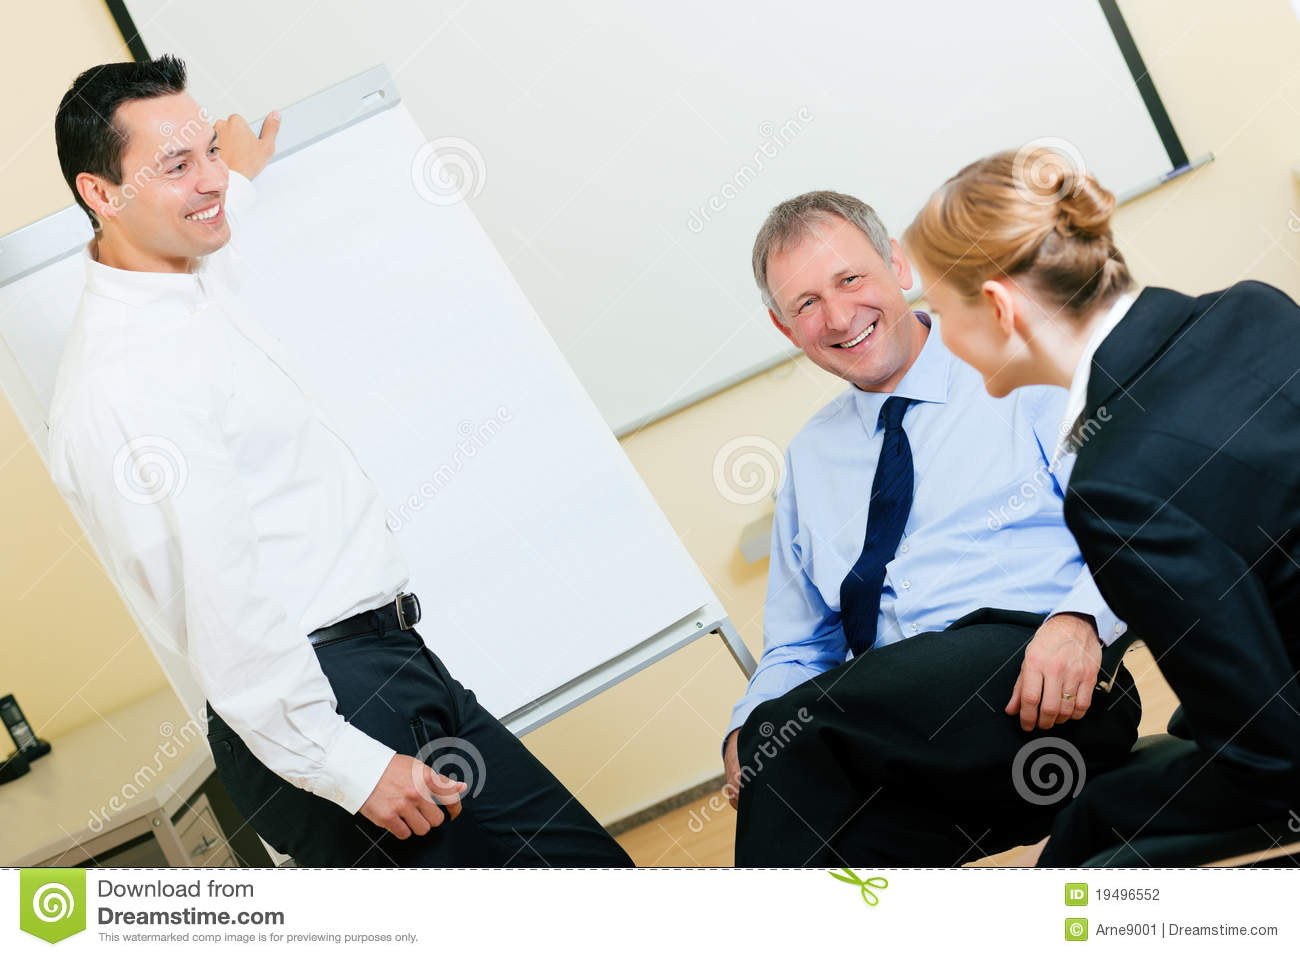 Have a Q&A session in a Skype for Business meeting